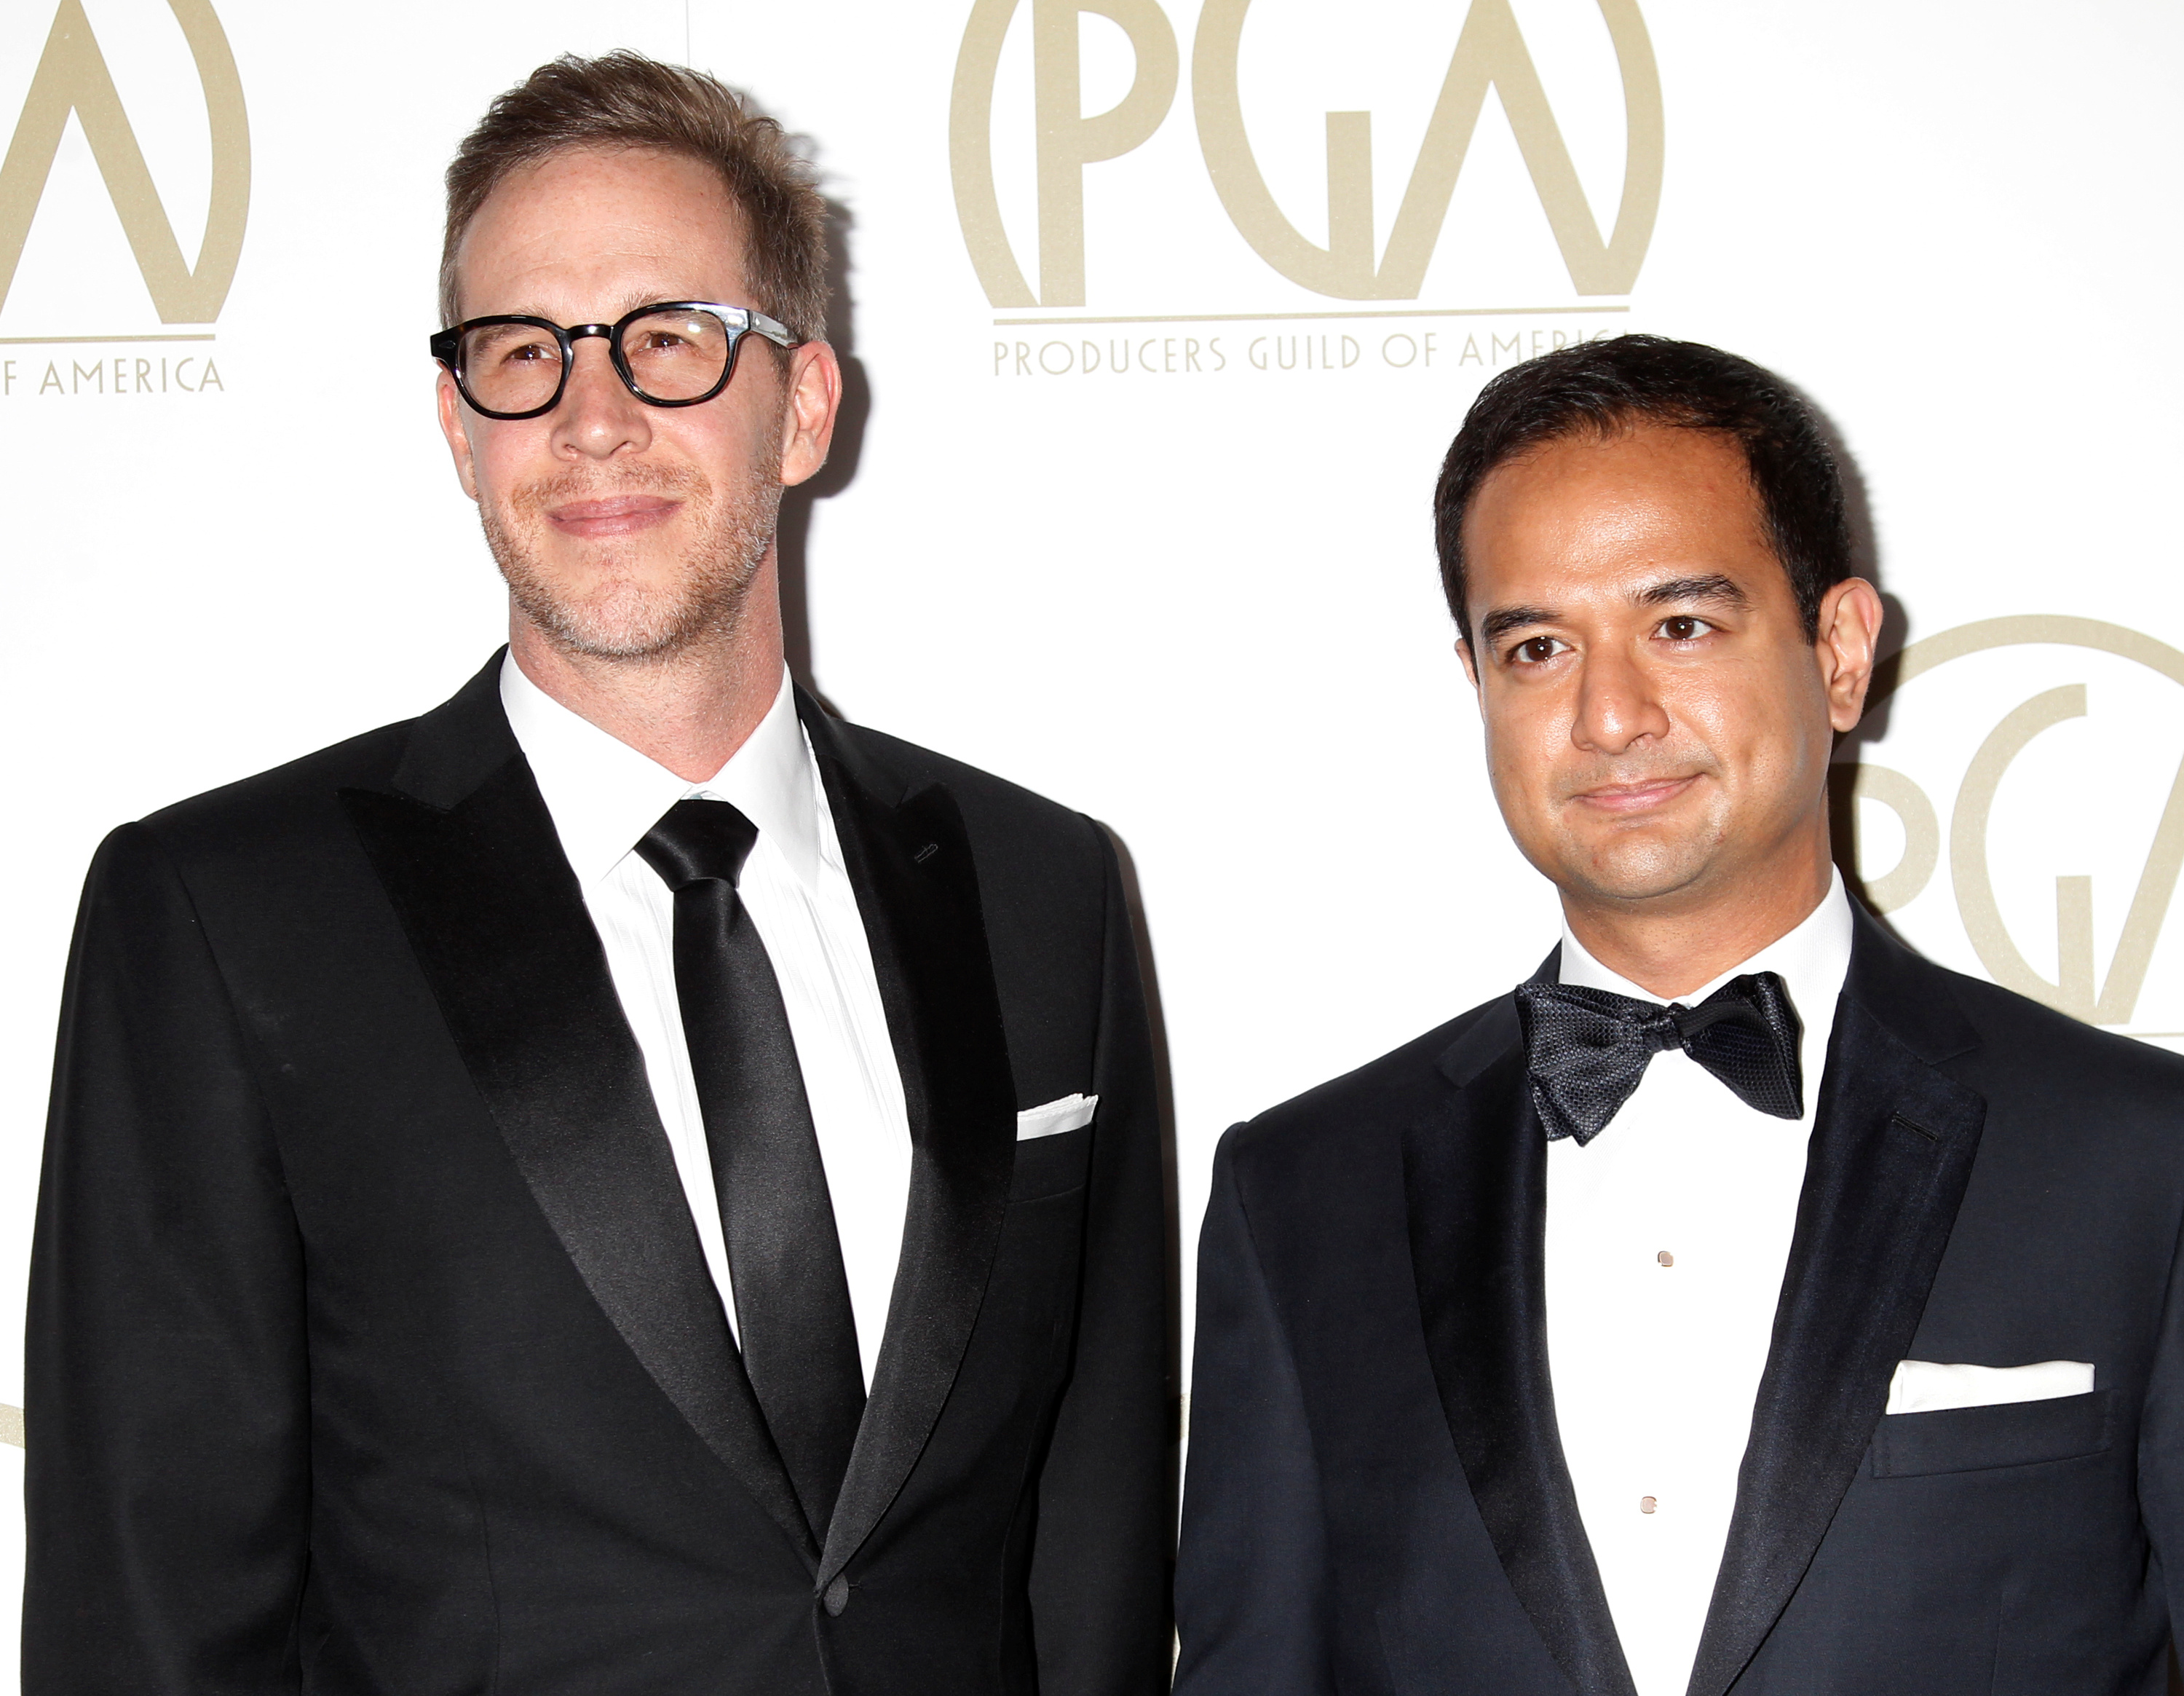 Riza Aziz stands with Joey McFarland, another producer of the film 'The Wolf of Wall Street', as they arrive at the 25th Annual Producers Guild of America Awards in Los Angeles January 19, 2014. — Reuters pic